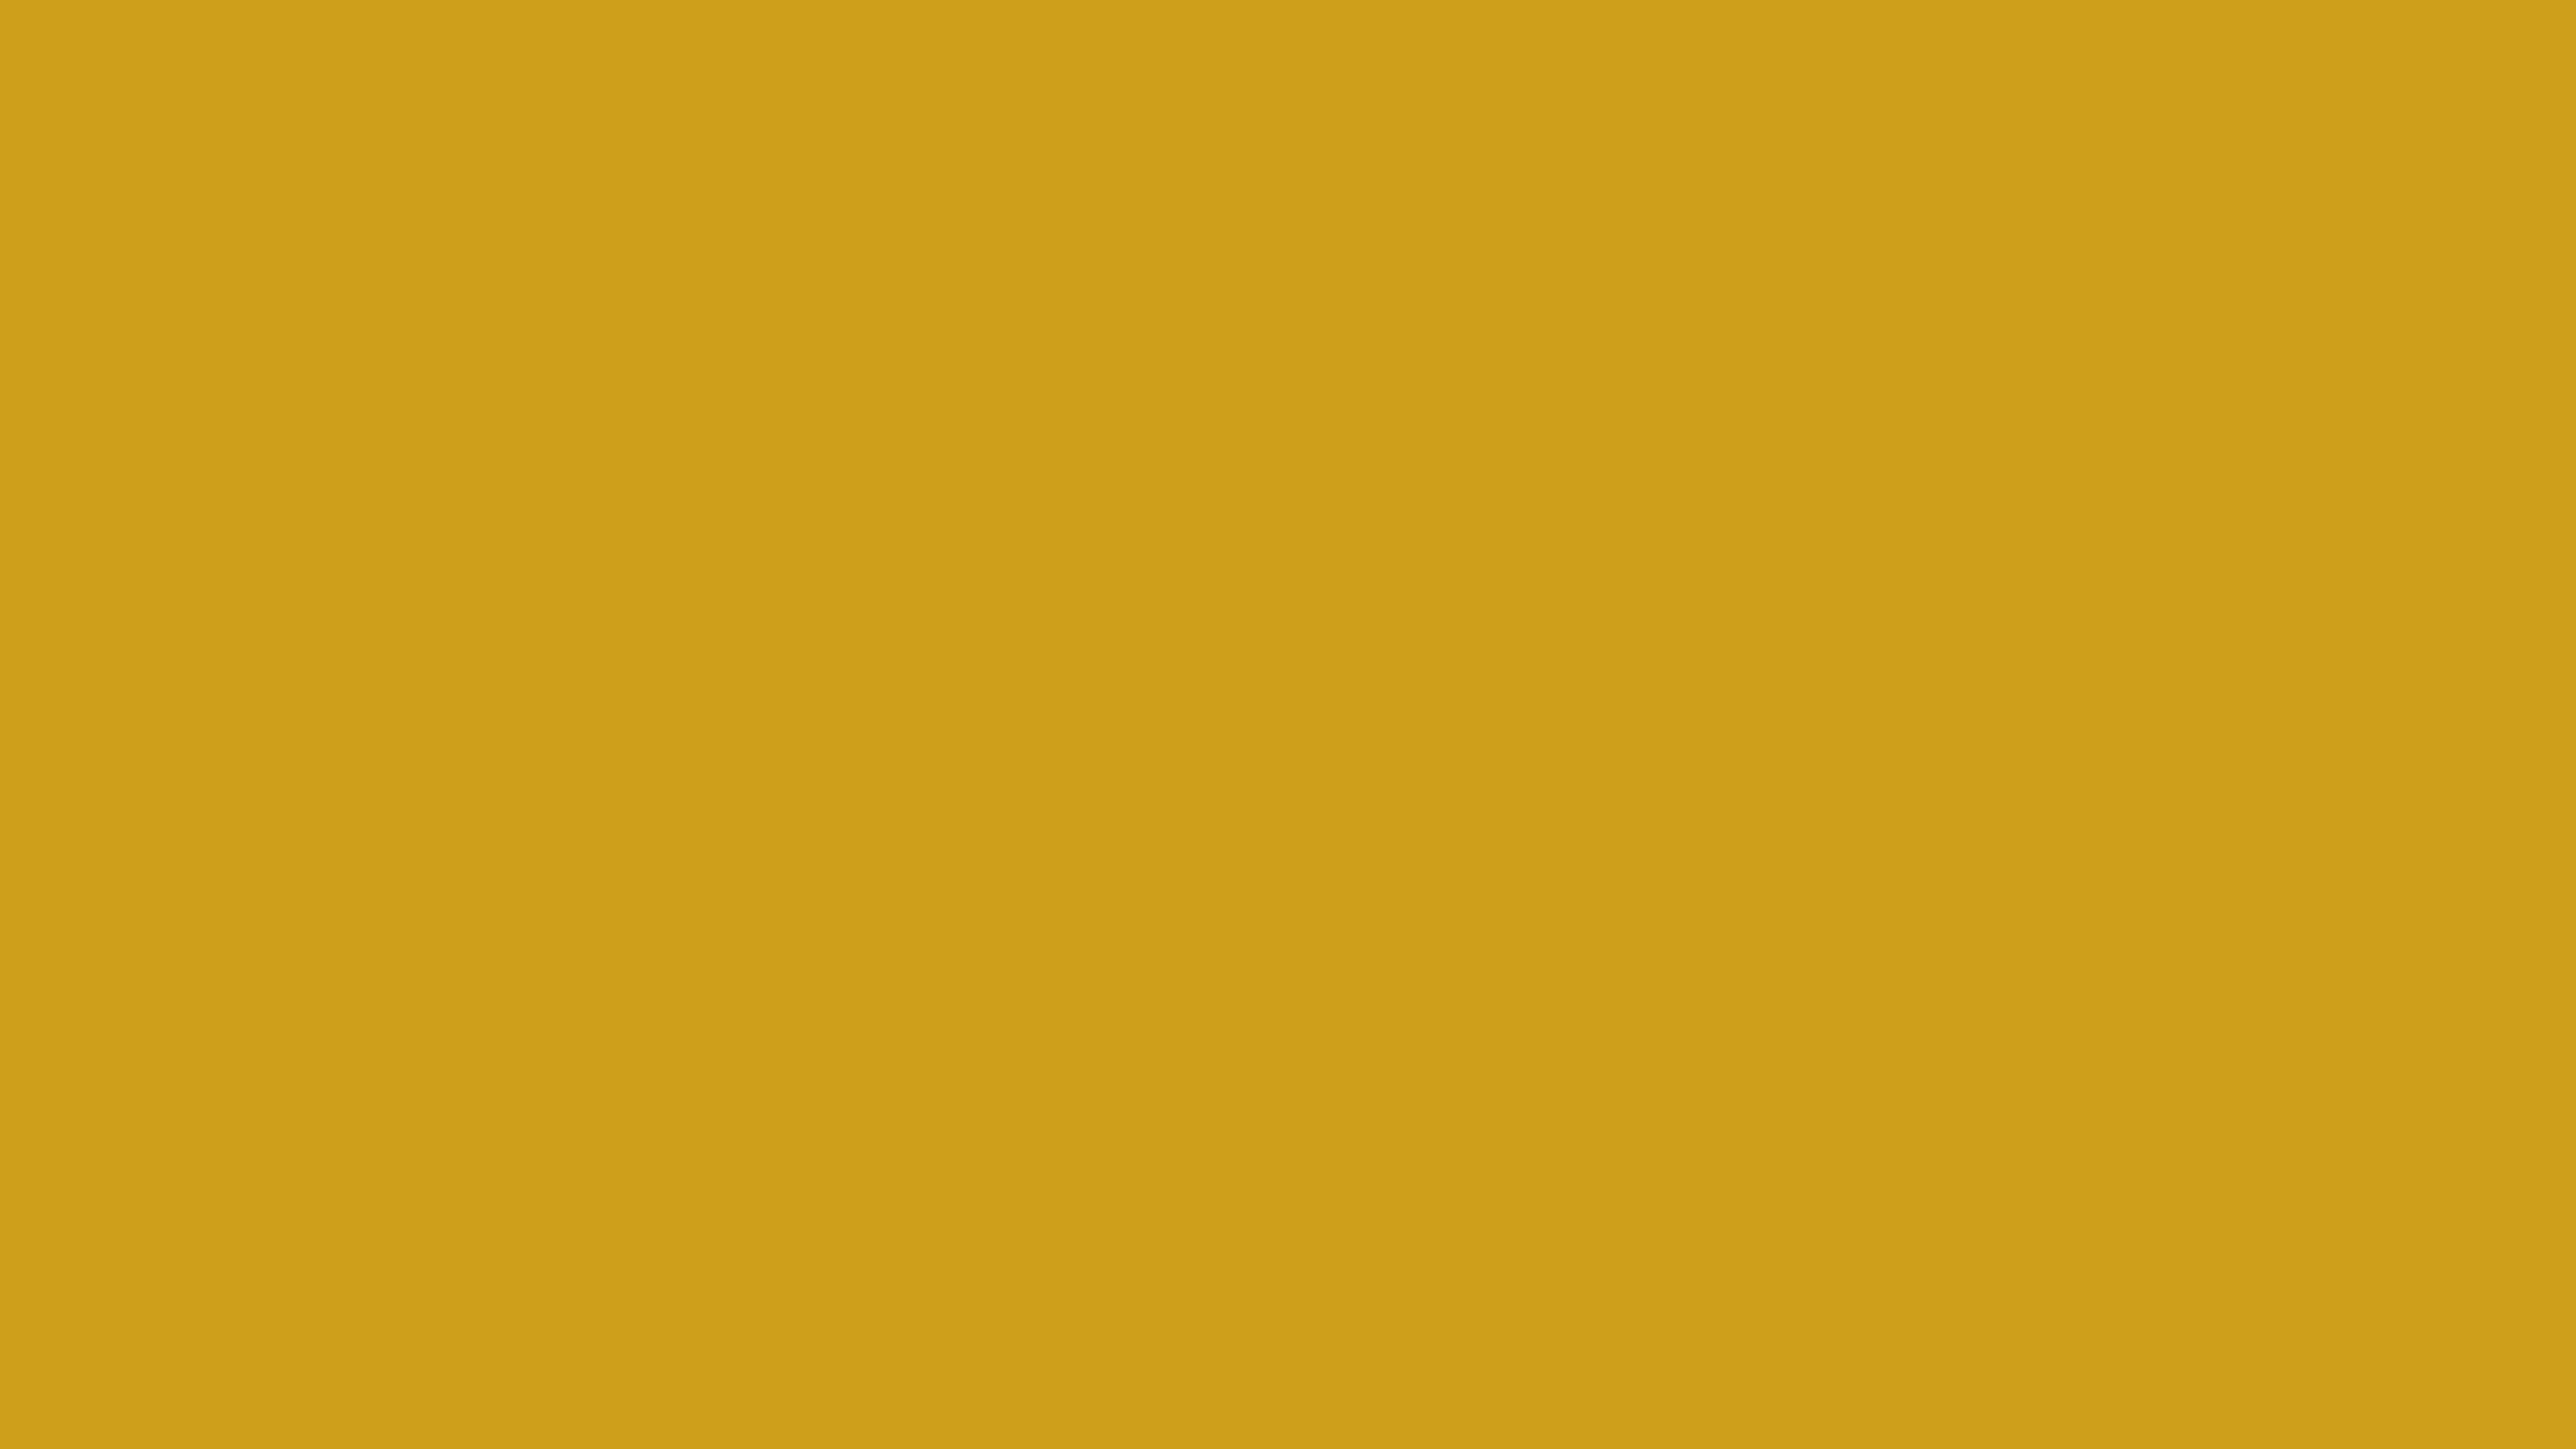 5120x2880 Lemon Curry Solid Color Background